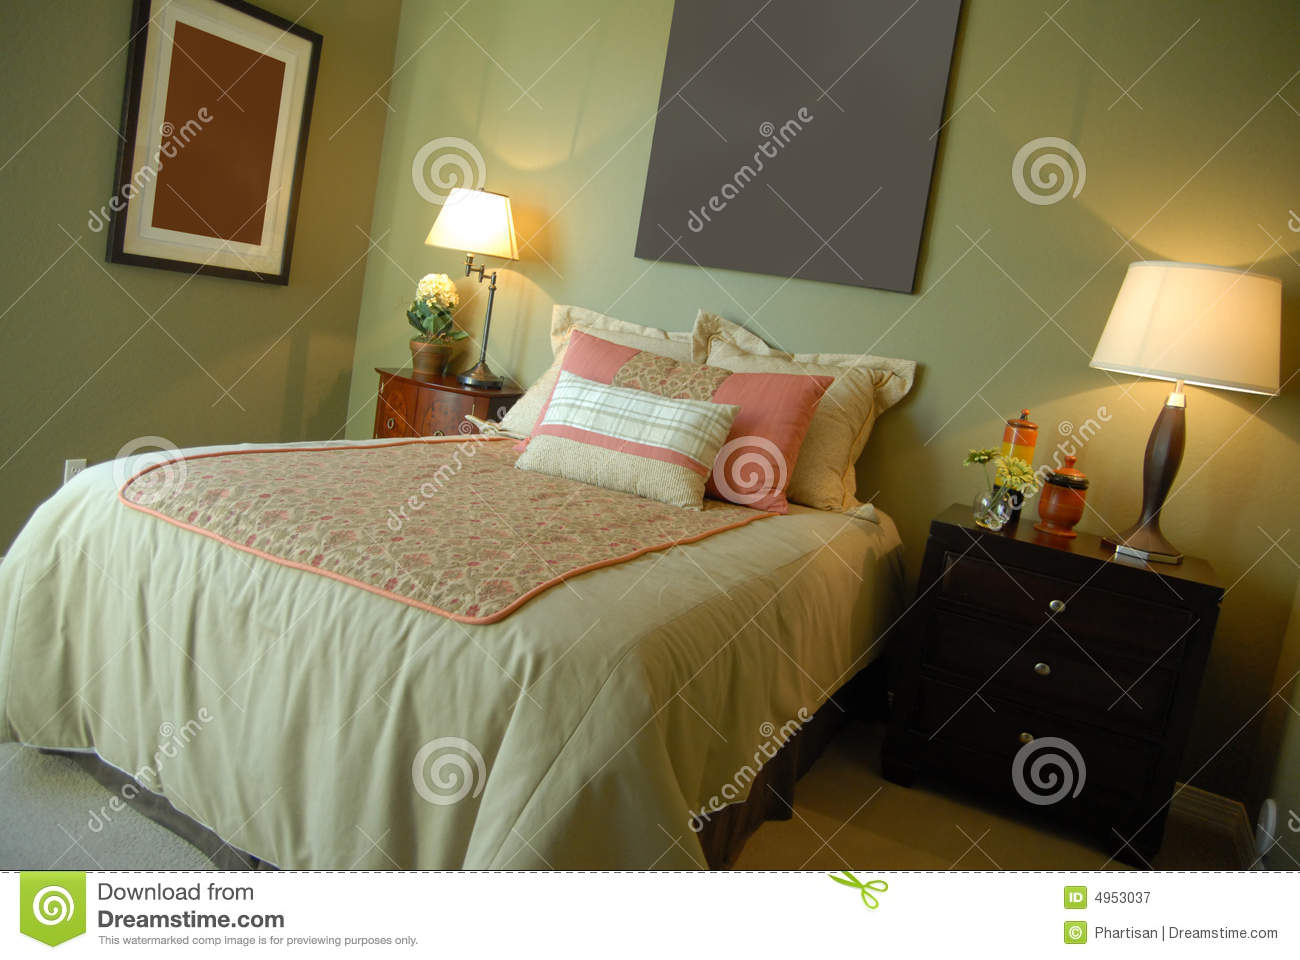 Beautiful showcase bedroom interior design royalty free for Bedroom showcase